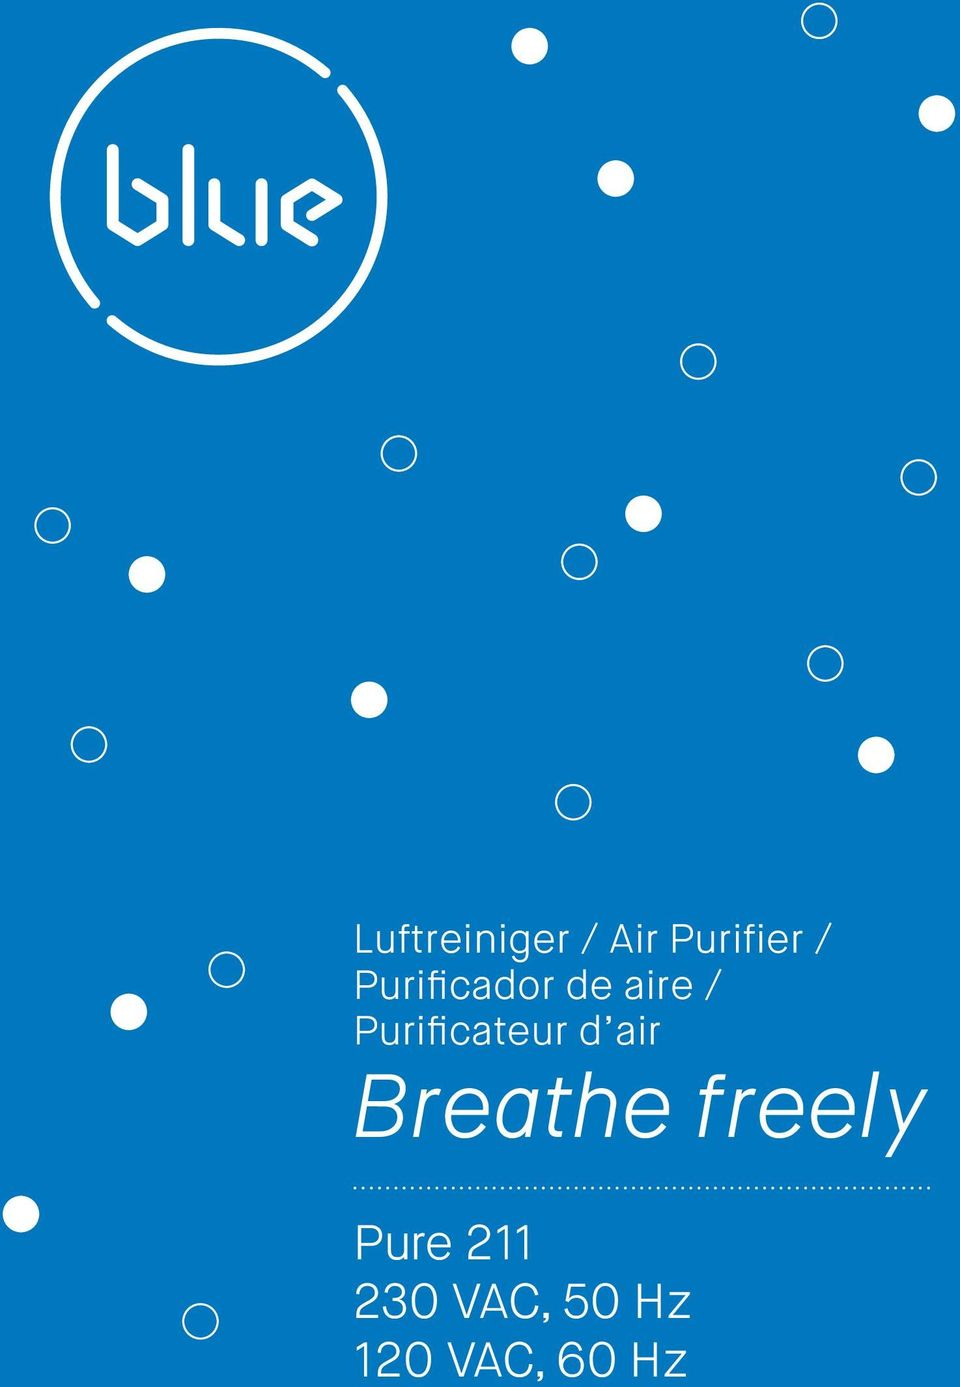 Purificateur d air Breathe